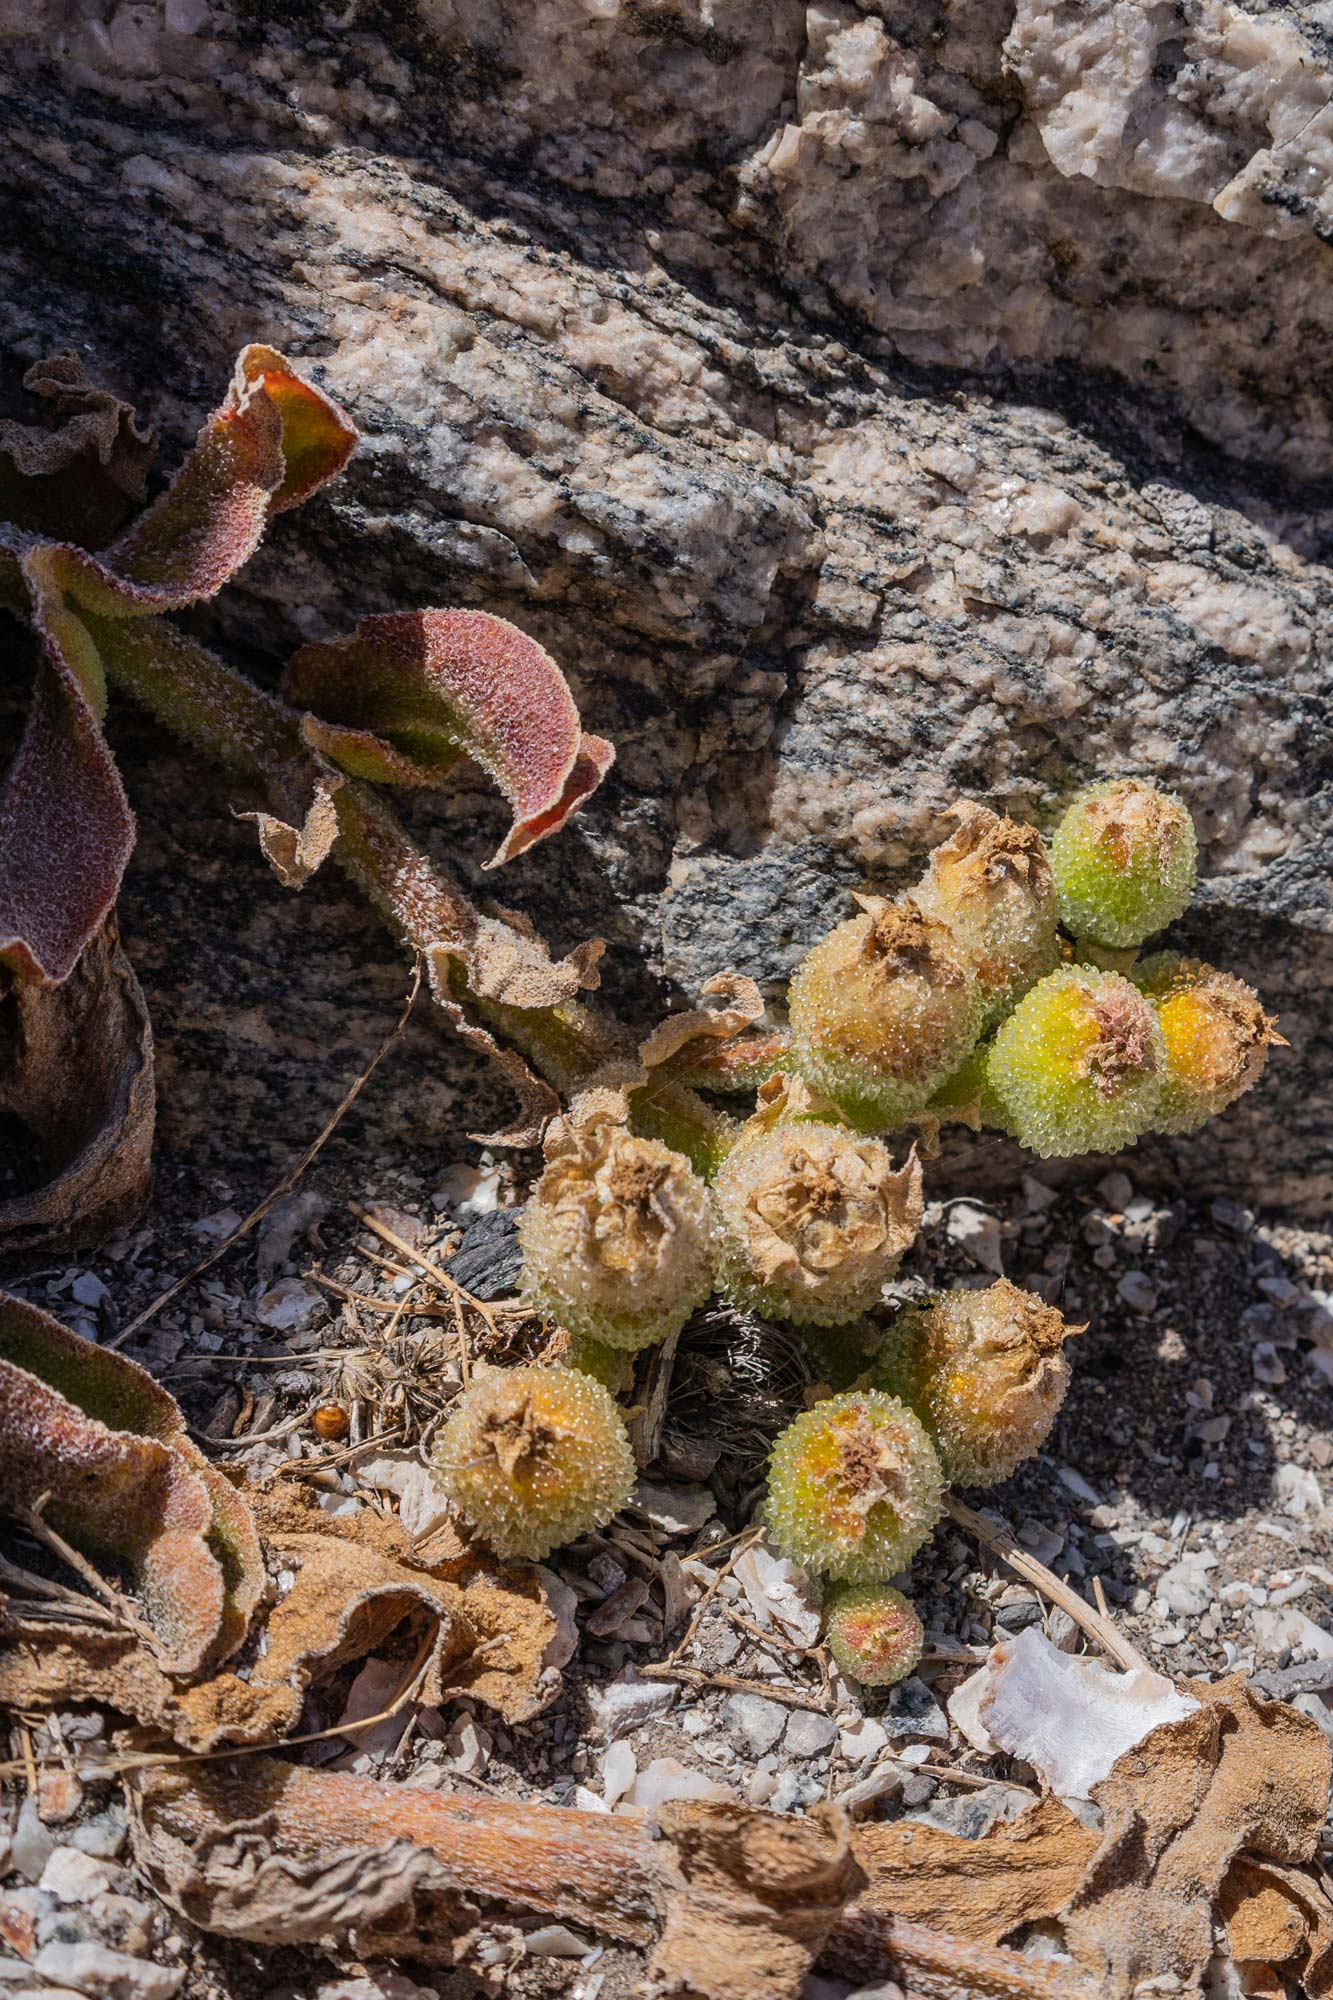 Weird and wonderful flora of the Succulent Karoo Image Copyright Soonafternoon